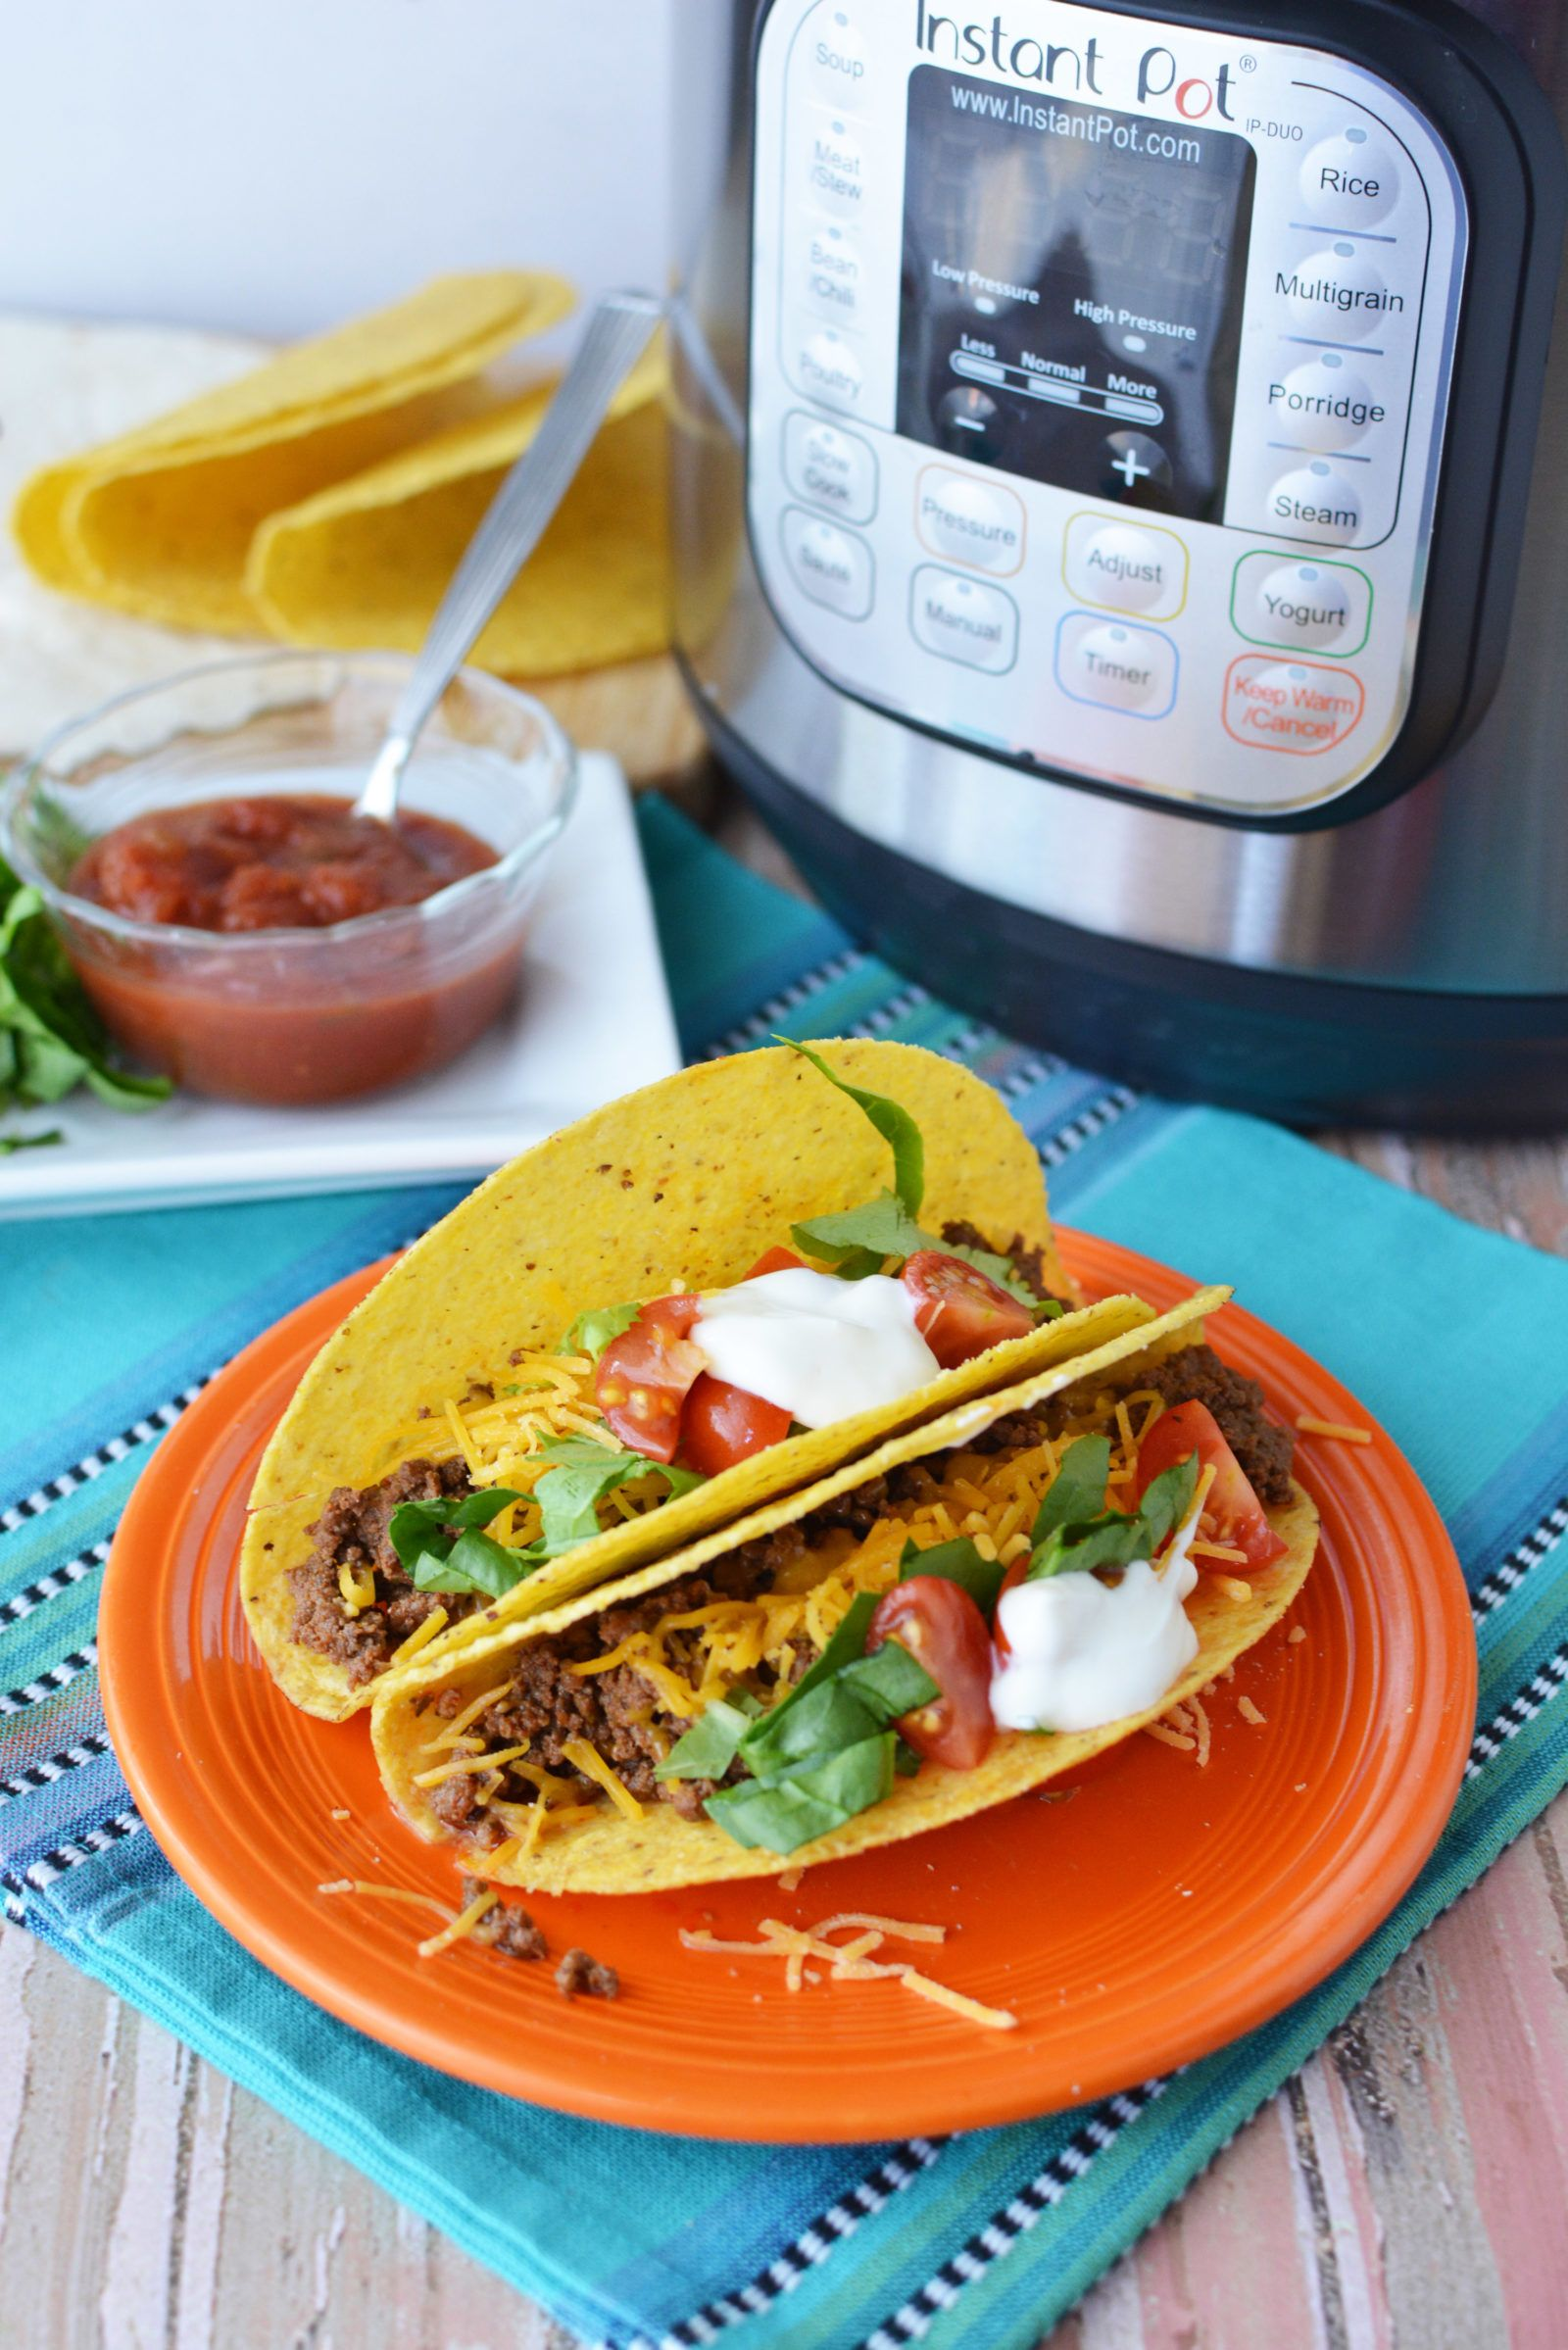 Instant Pot Tacos – Make Taco Tuesdays Easy #groundturkeytacos